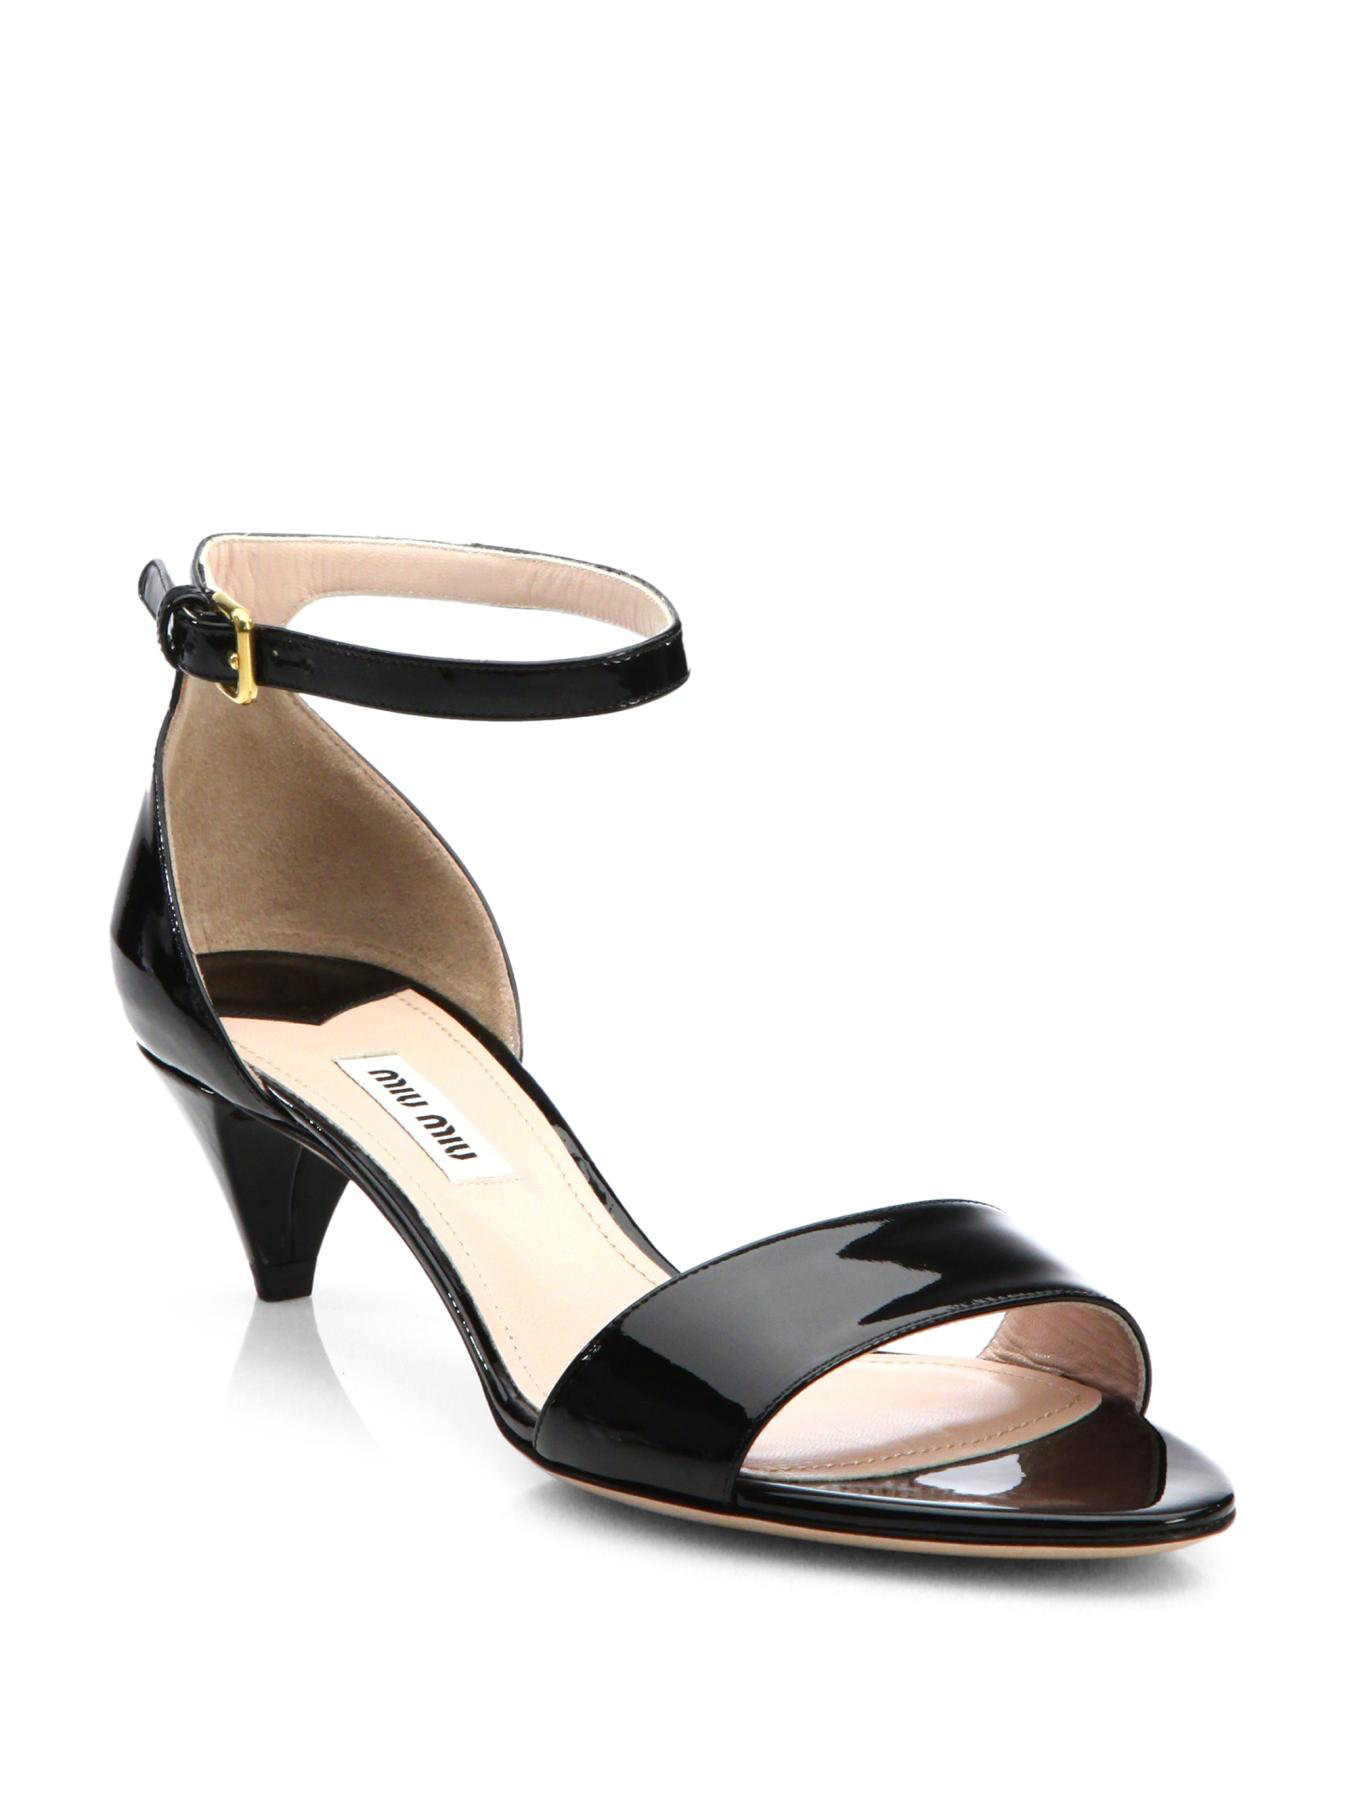 Miu miu Patent Leather Kitten Heel Sandals in Black | Lyst